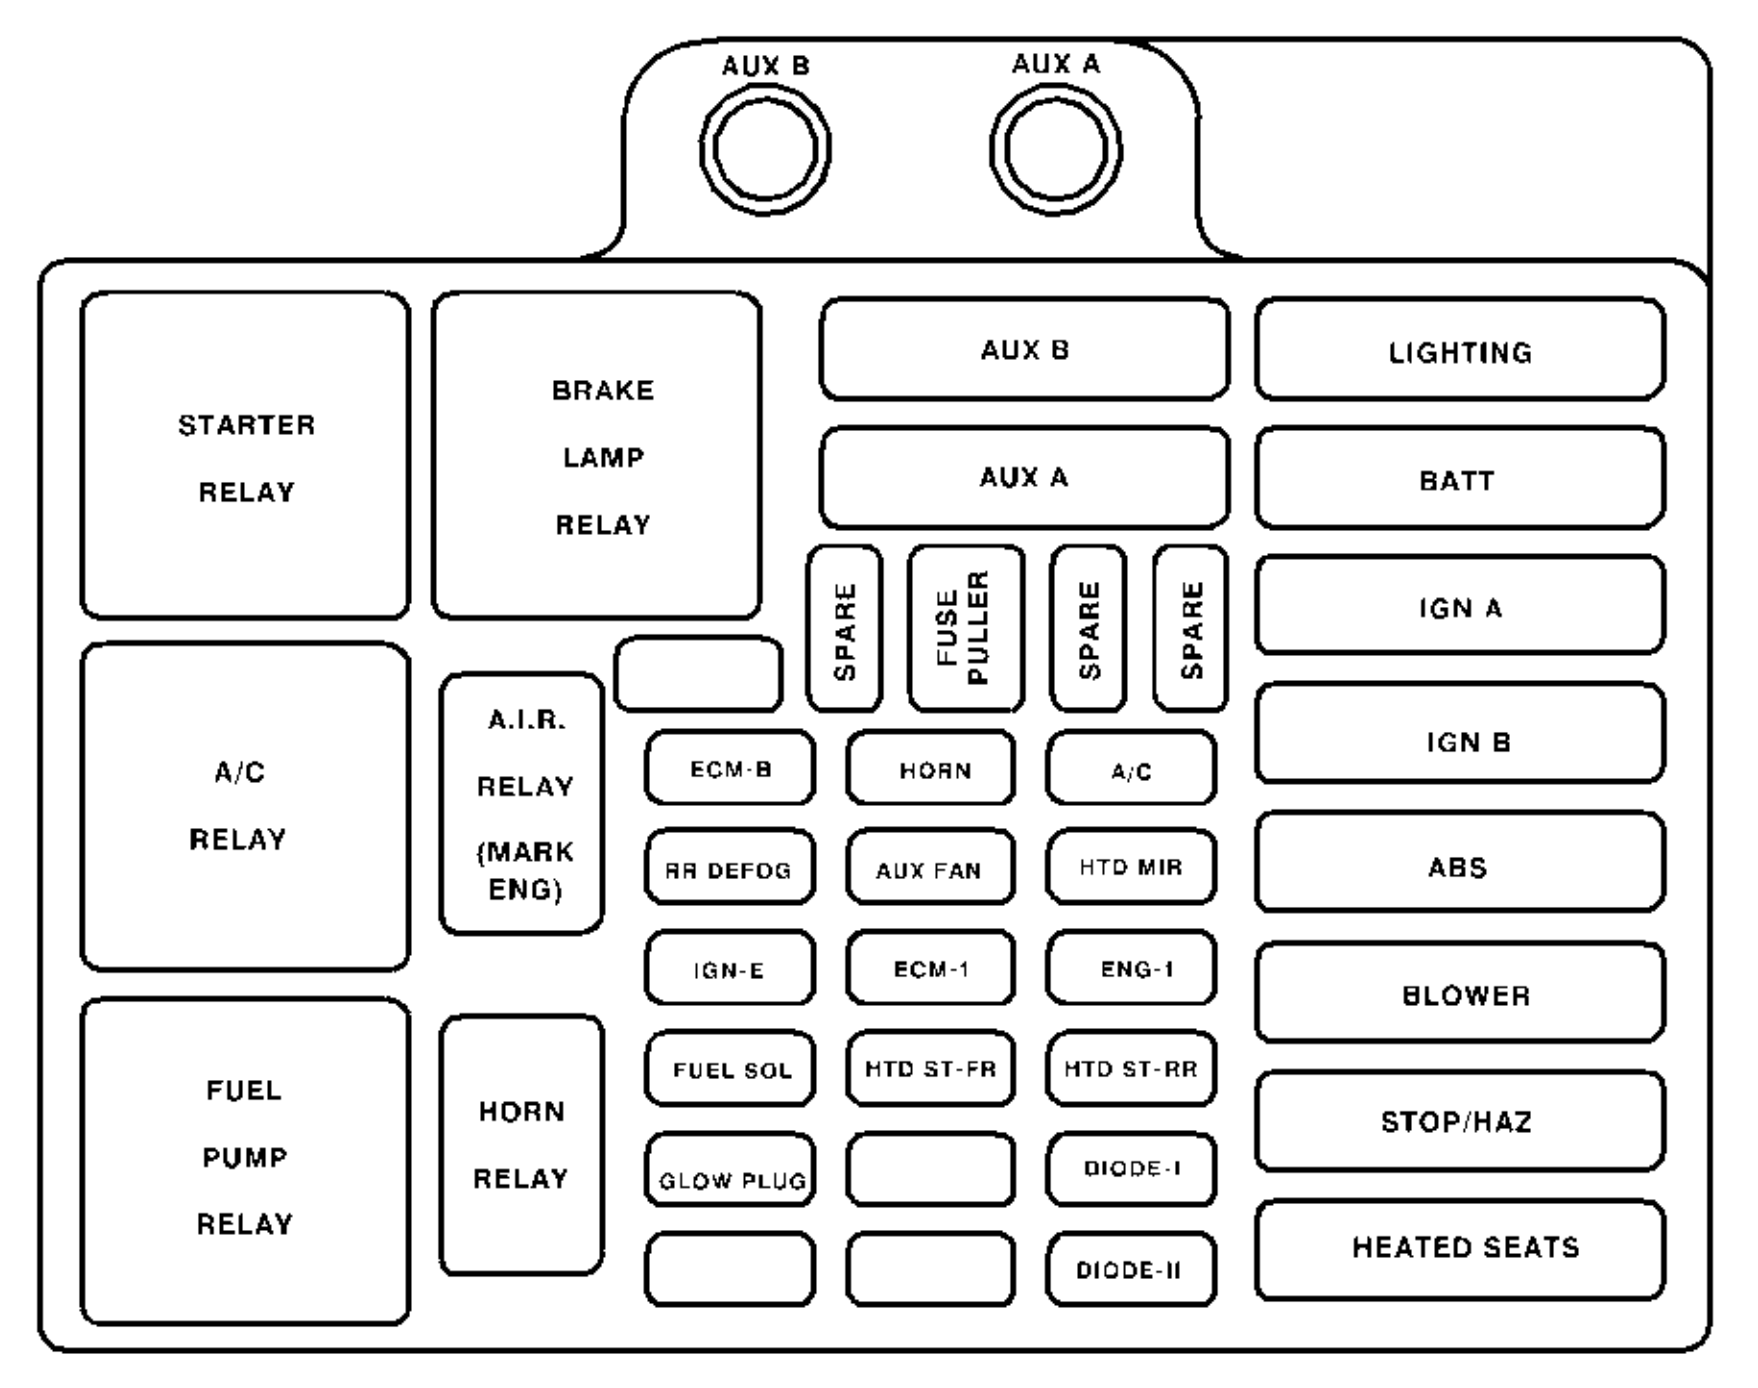 hight resolution of 97 geo fuse box diagram best part of wiring diagram1997 geo prizm fuse box diagram online